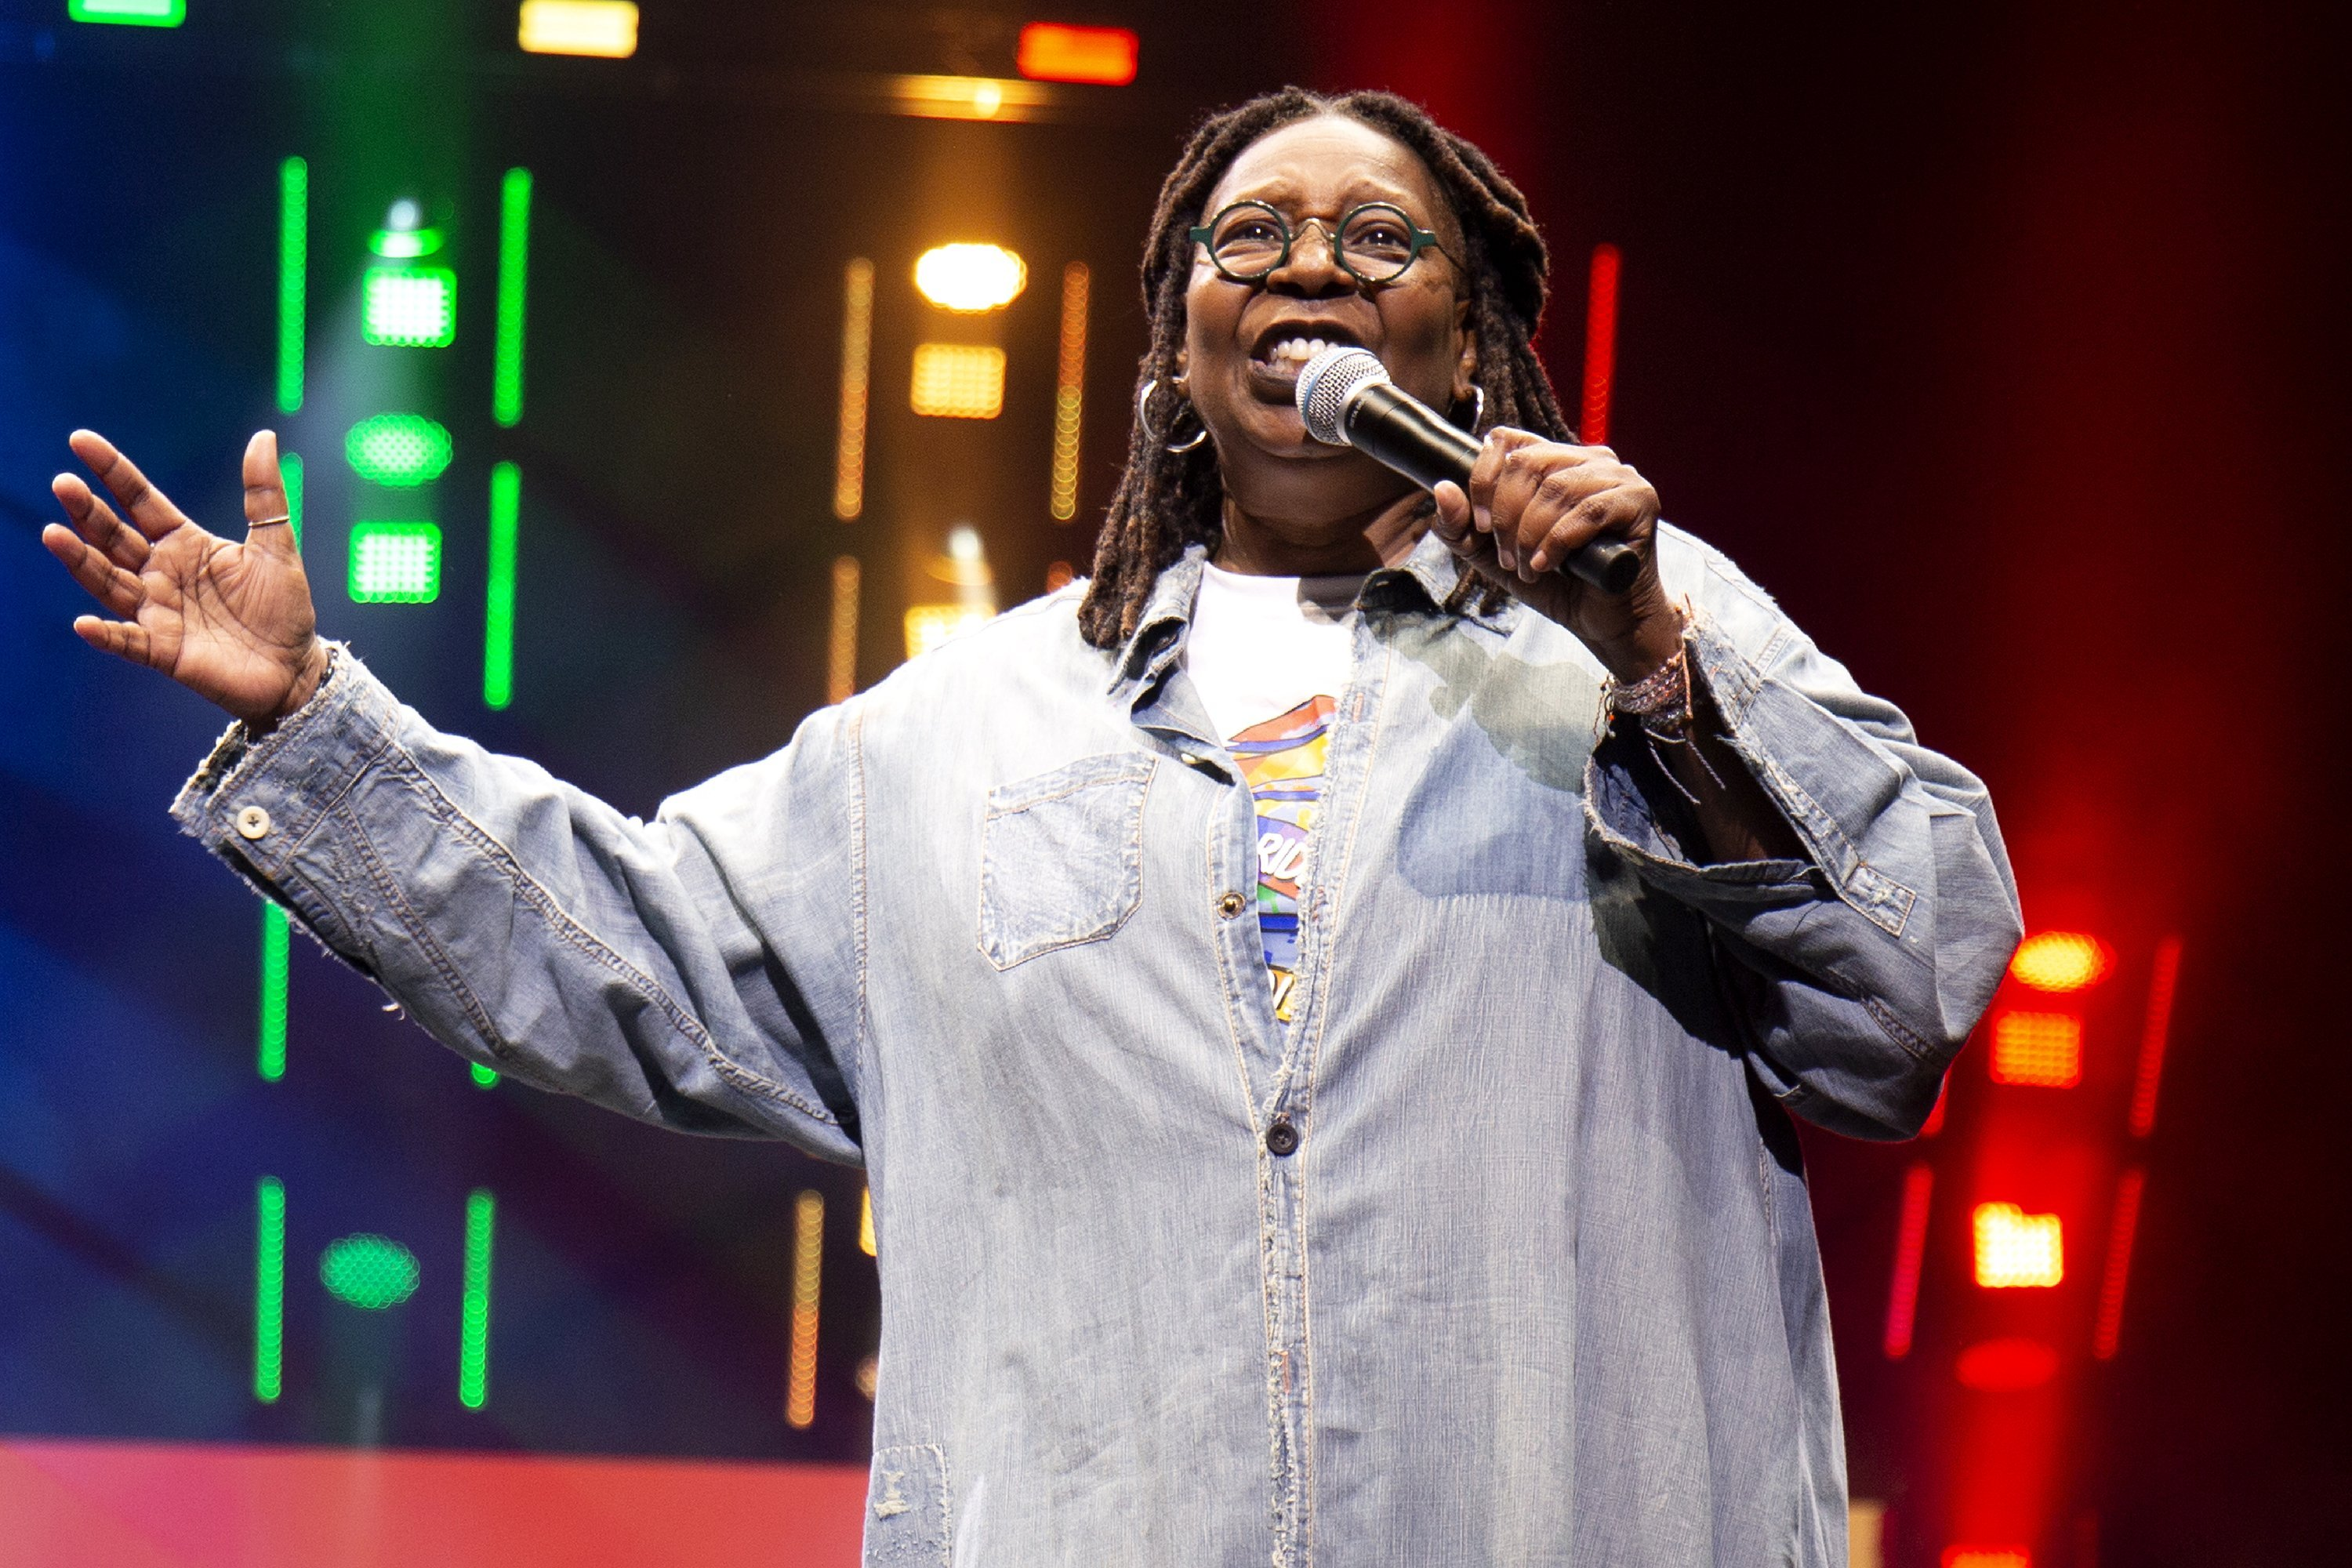 Whoopi Goldberg onstage during Opening Ceremony 'WorldPride NYC 2019' at Barclays Center on June 26, 2019, in New York City. | Source: Getty Images.